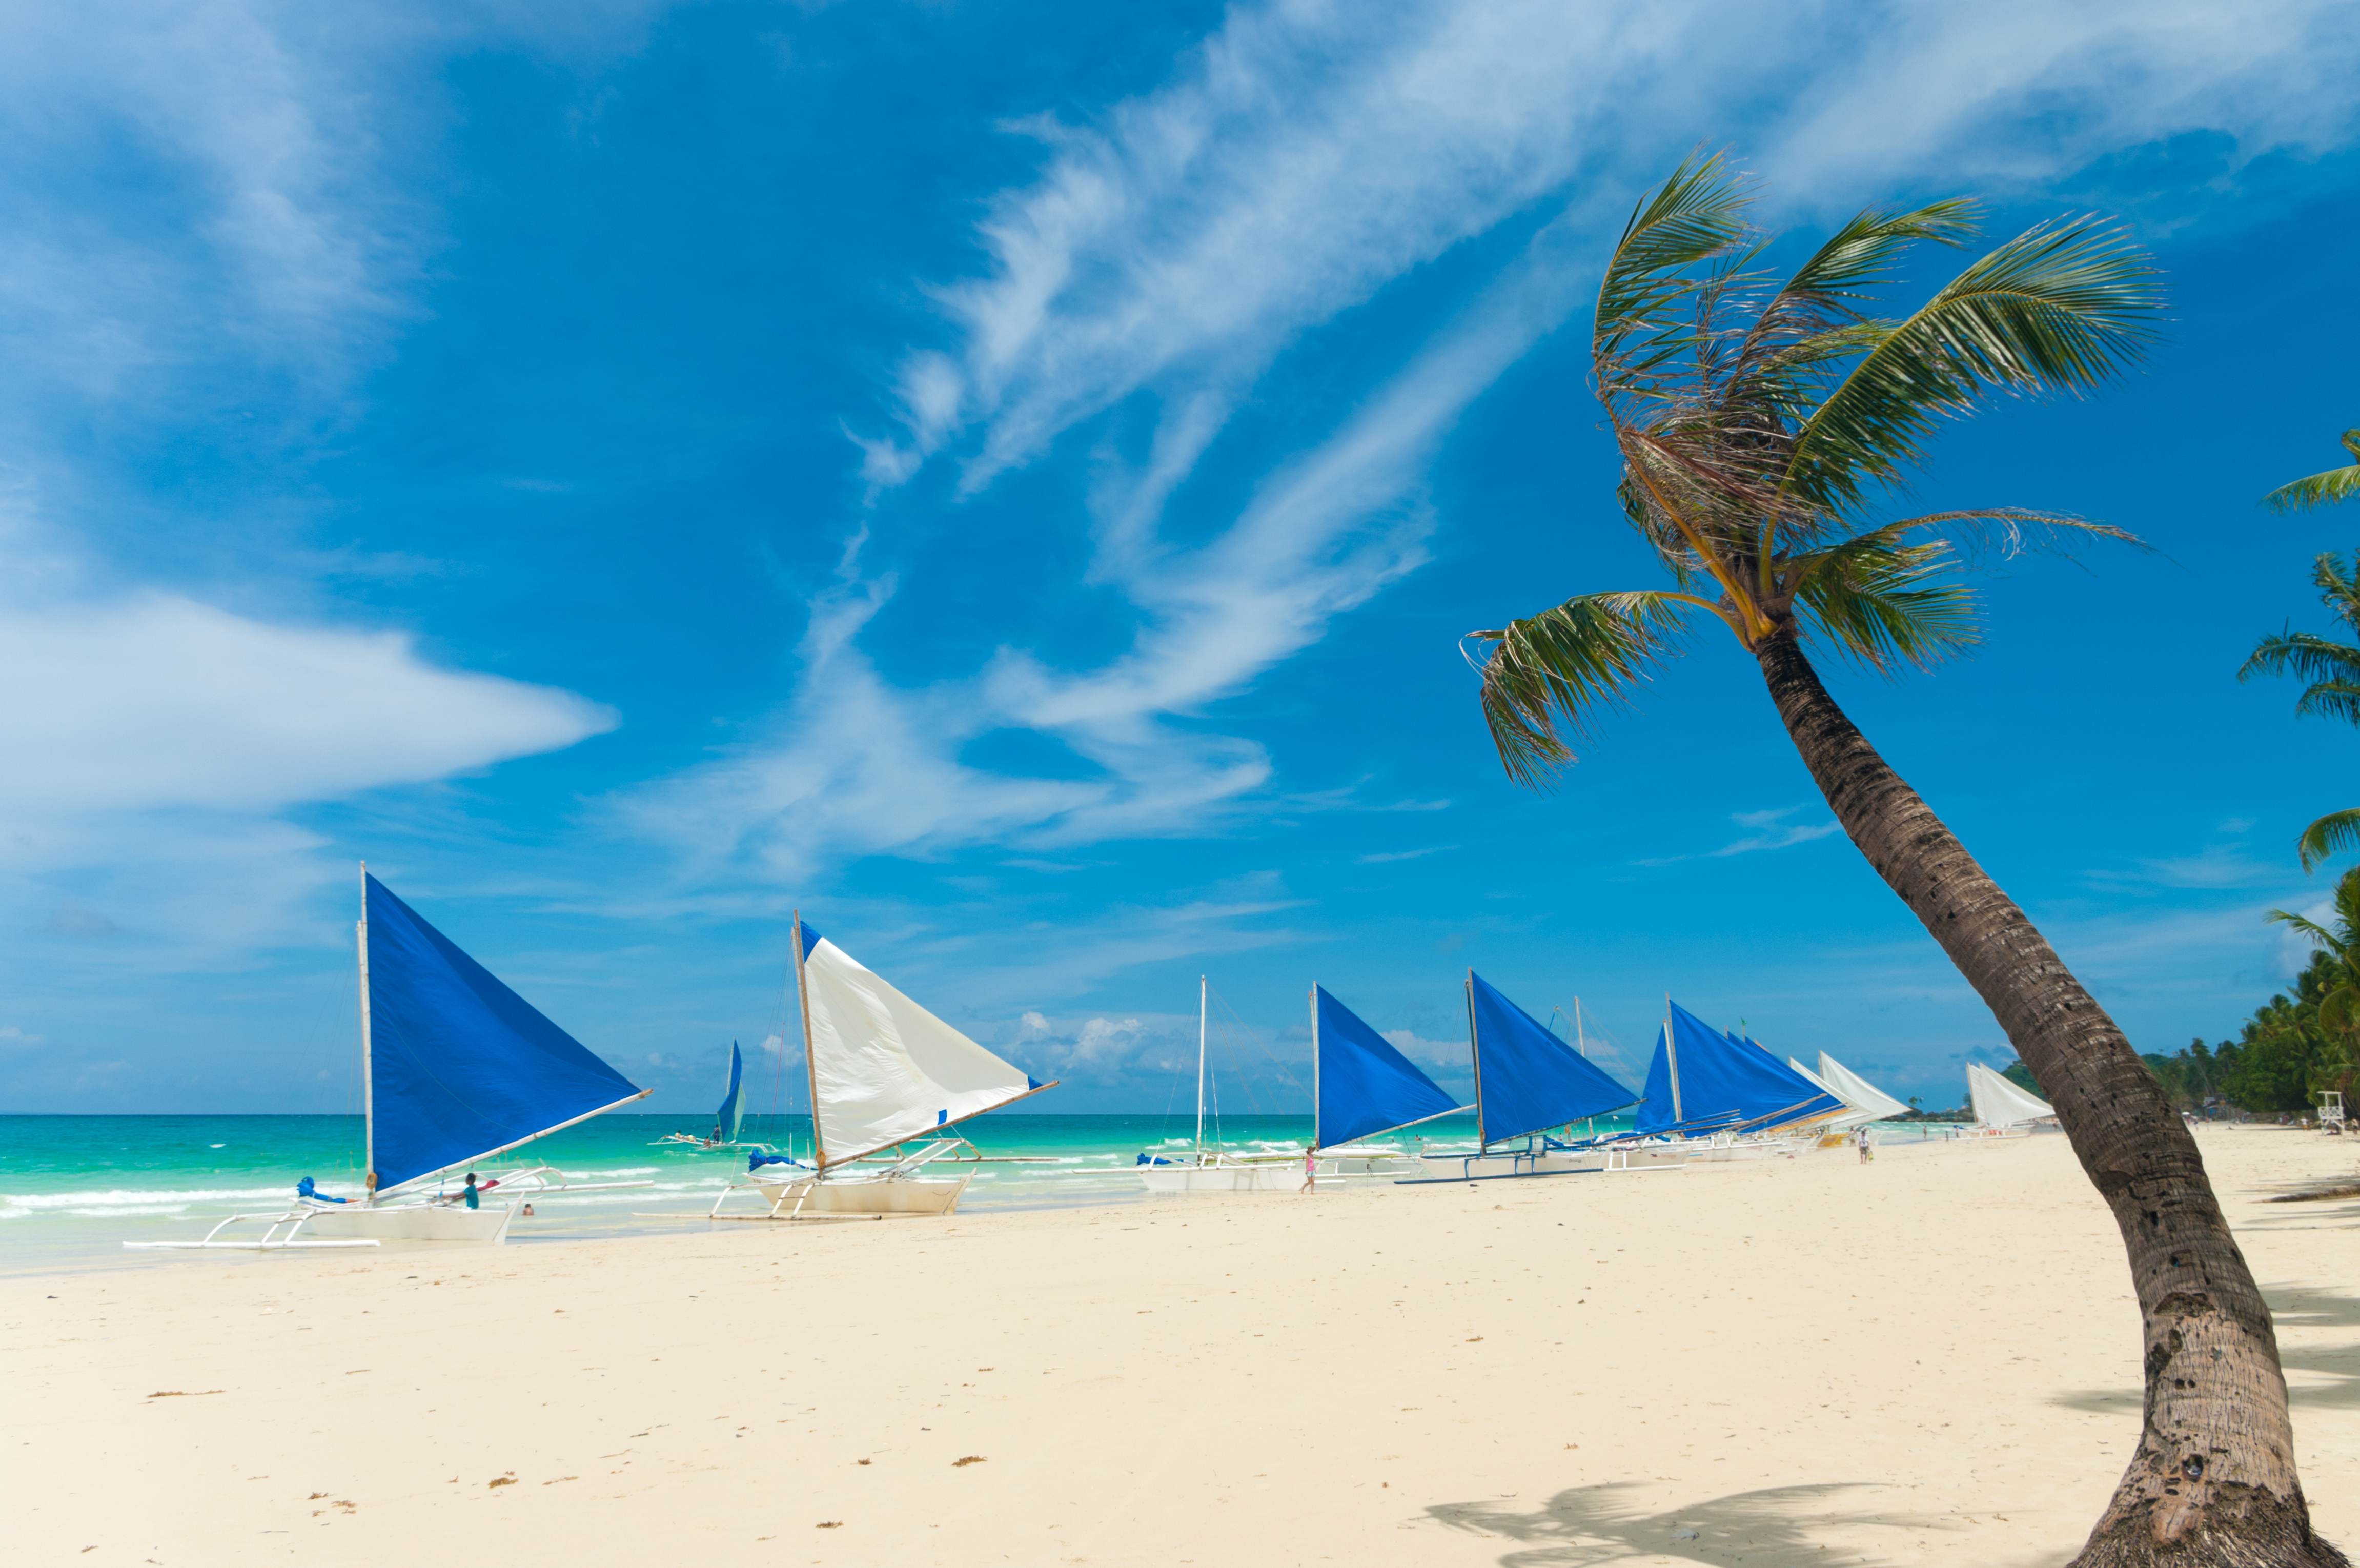 Package Deal to Boracay with Astoria Current & Philippine Airlines 4 Days 3 Nights from Manila - day 2